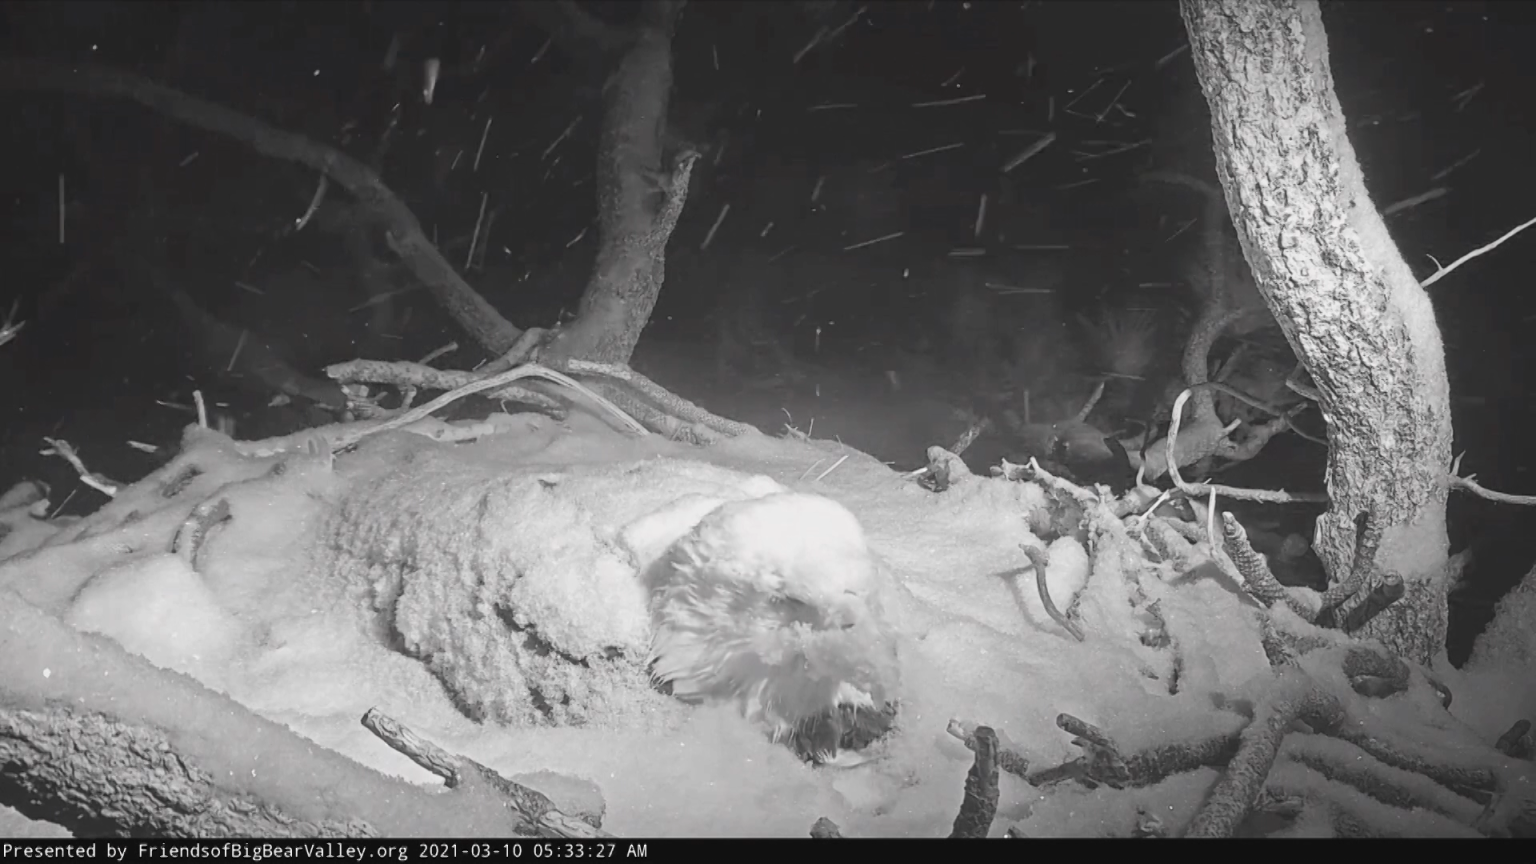 WATCH: Big Bear Bald Eagle covered in snow